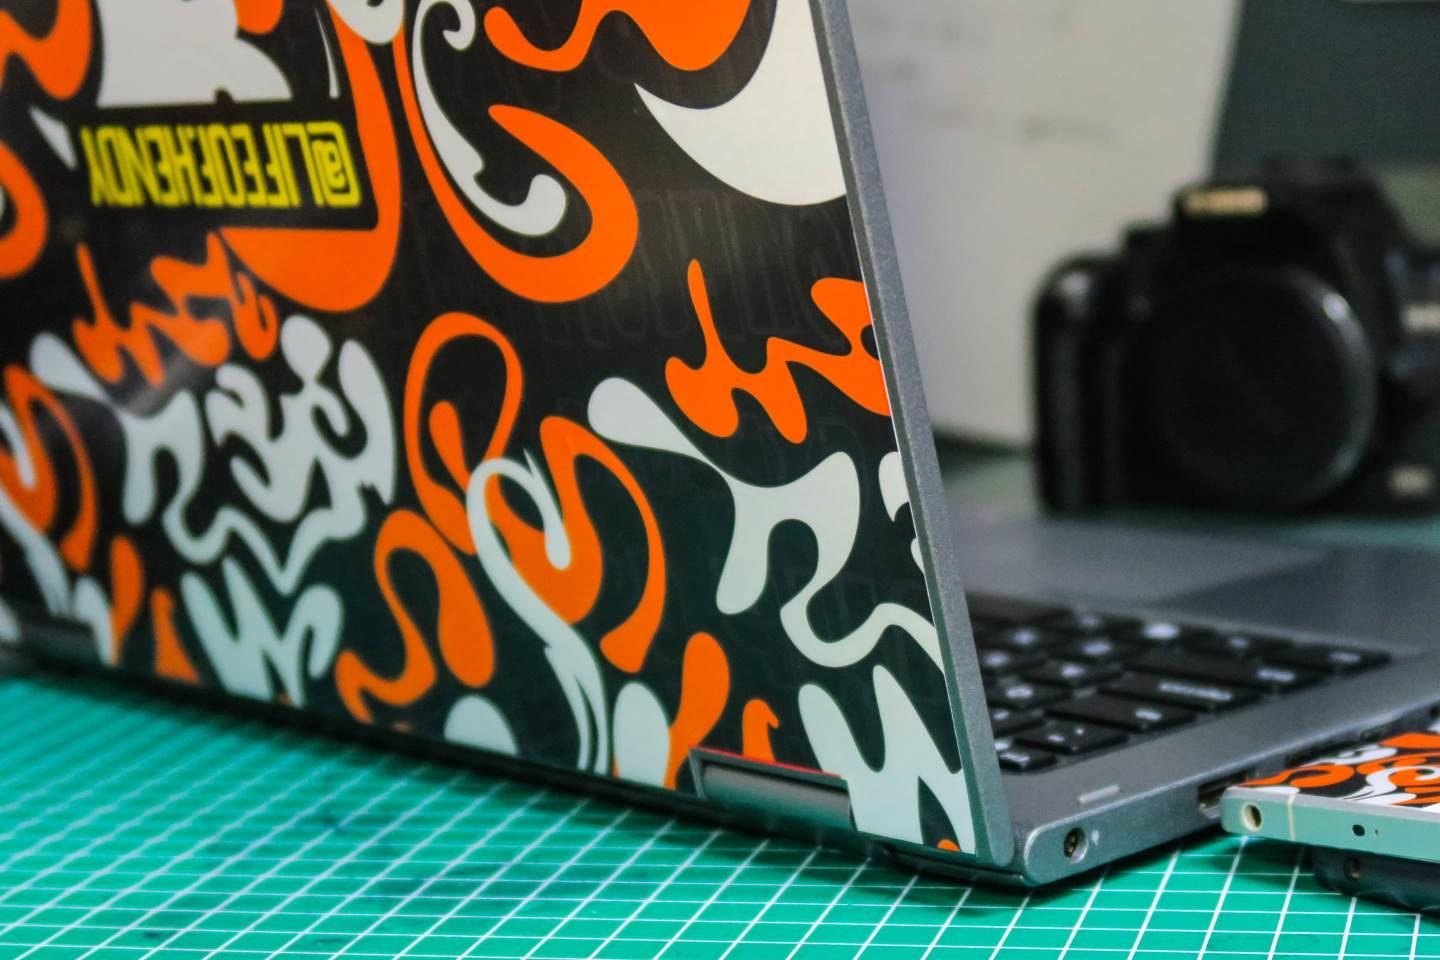 sticker vinyl laptop by h3ndy